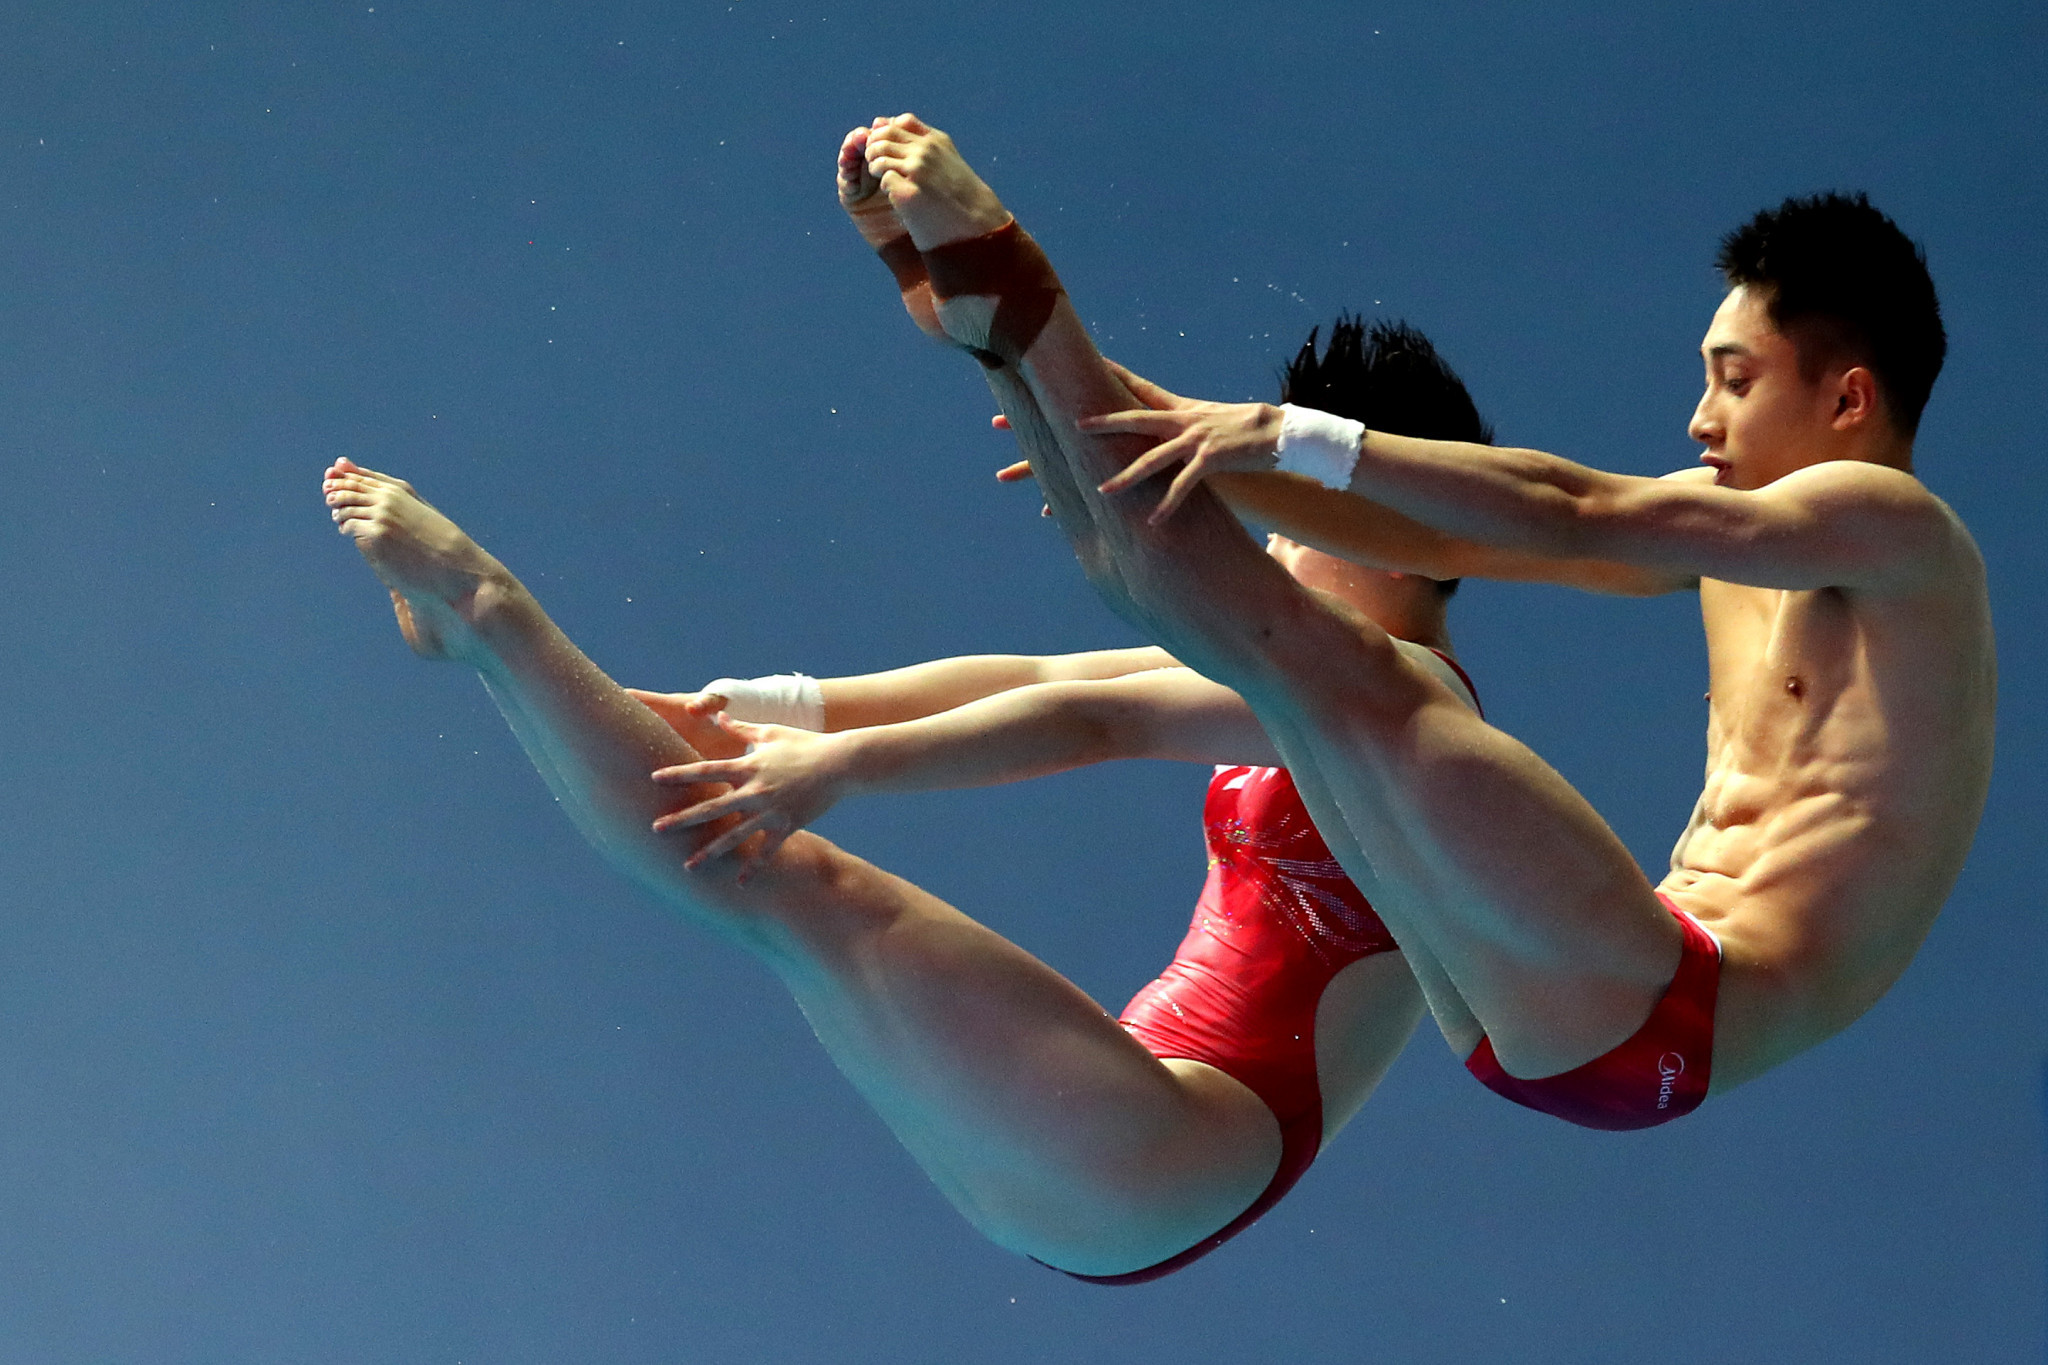 Lian Junjie and Si Yajie won the mixed 10m synchronised event as China dominated today's diving competition ©Getty Images